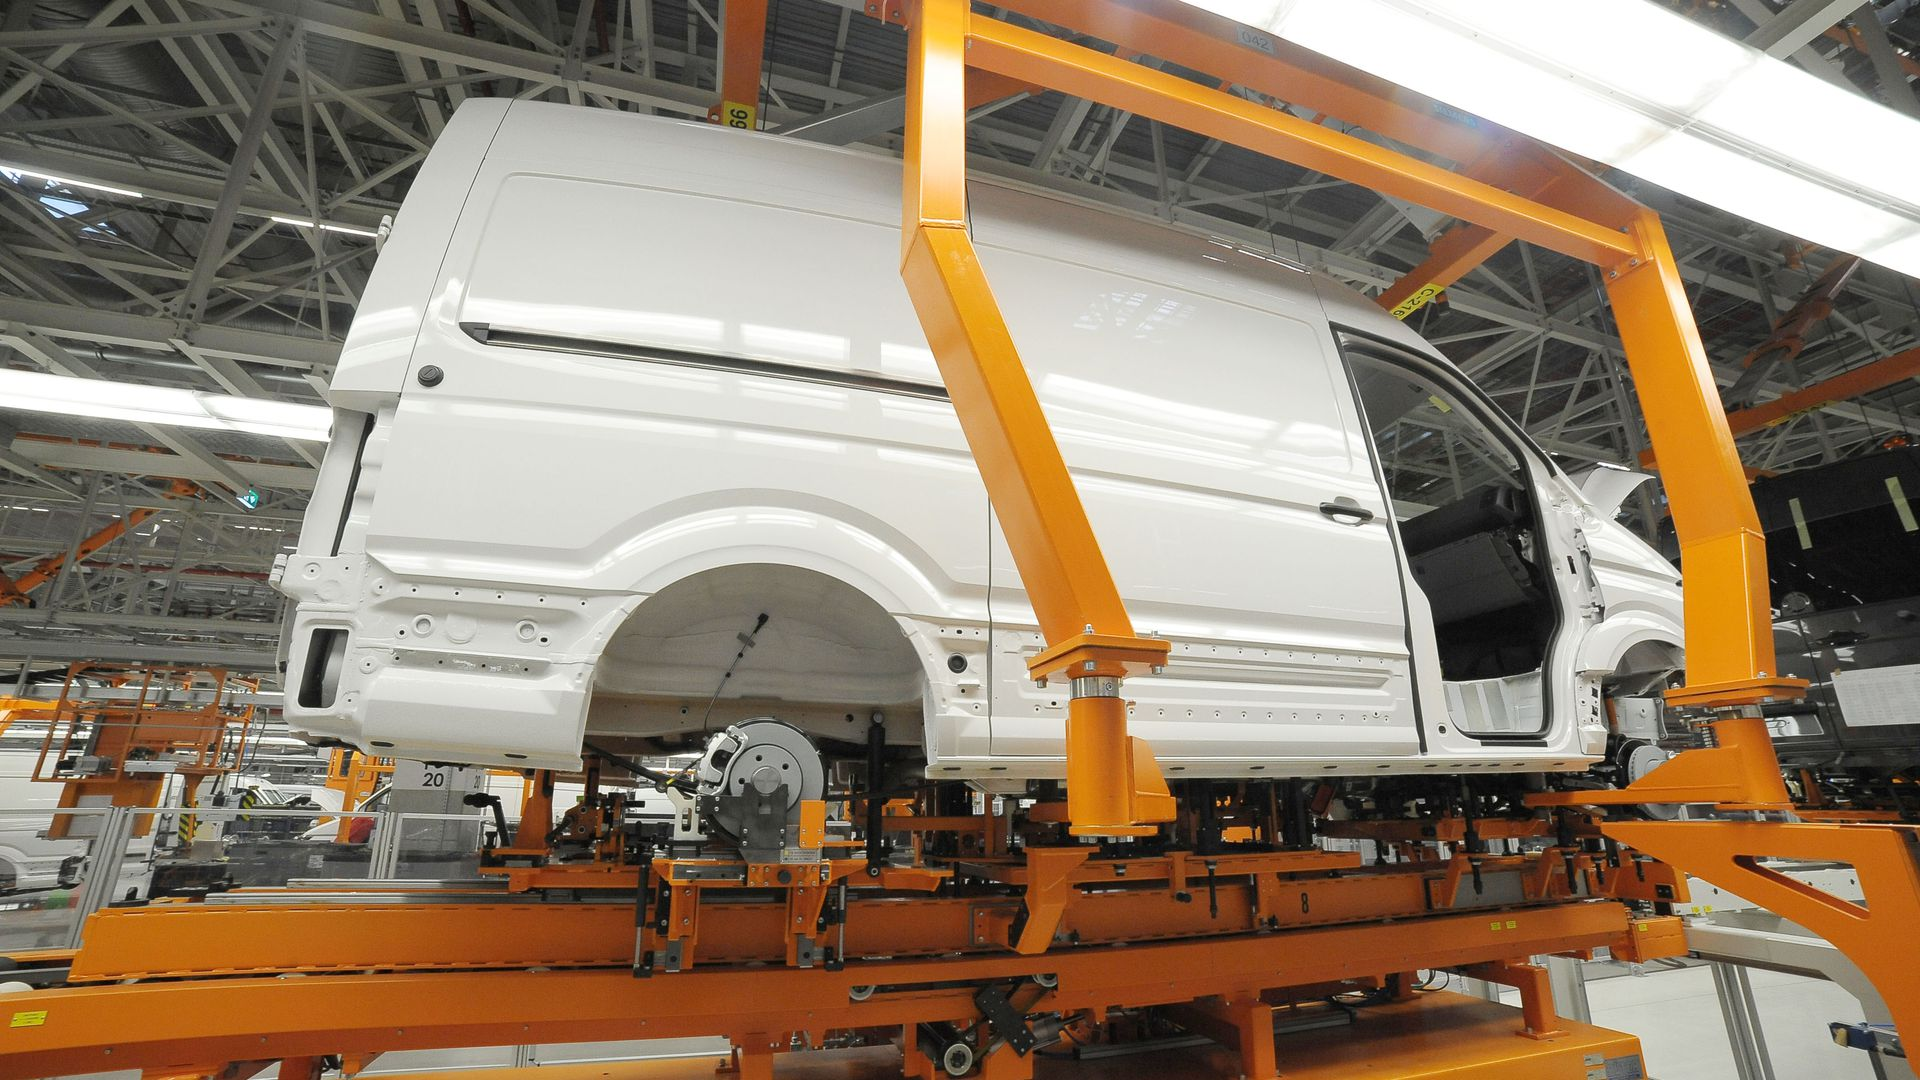 A Volkswagen van being made at a factory in Poland.